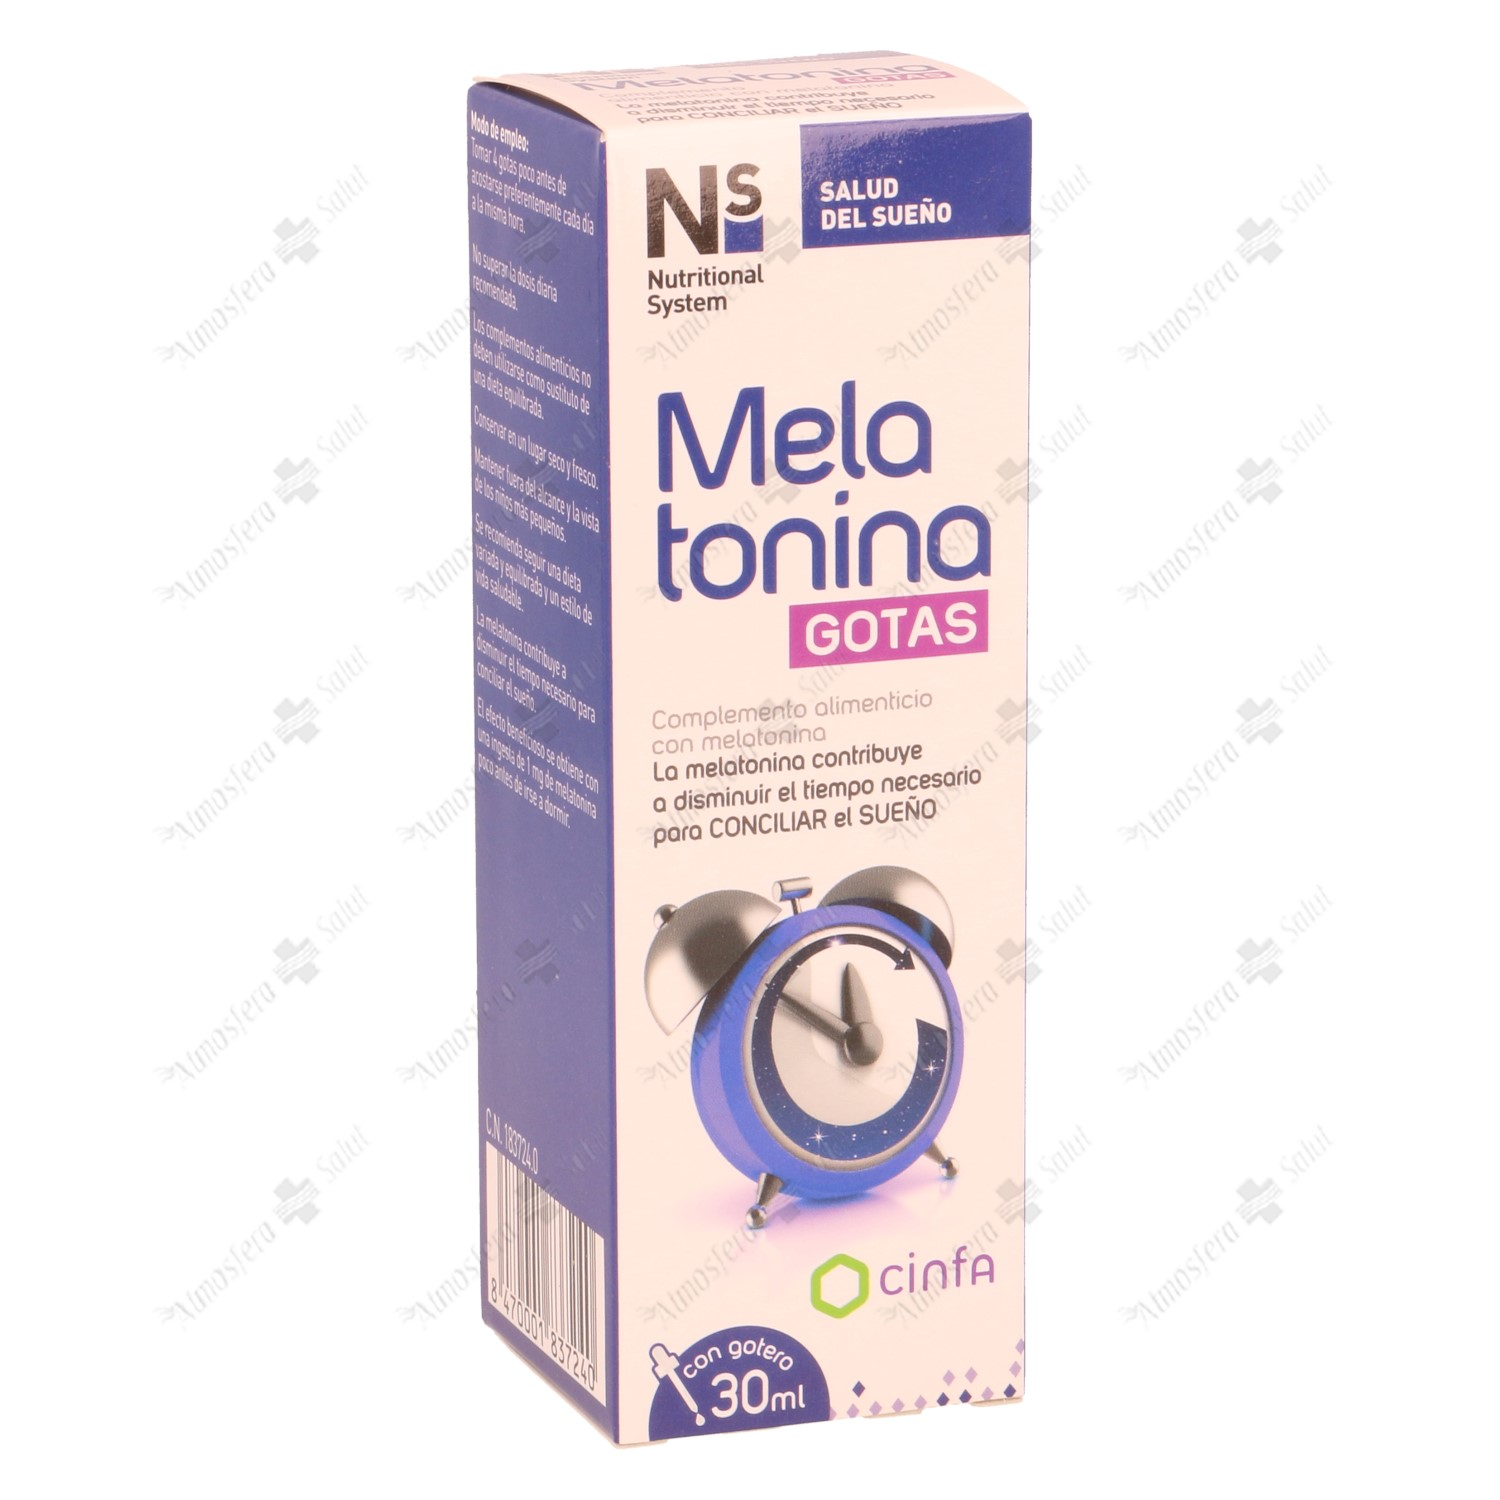 NS MELATONINA GOTAS 1MG 30 ML